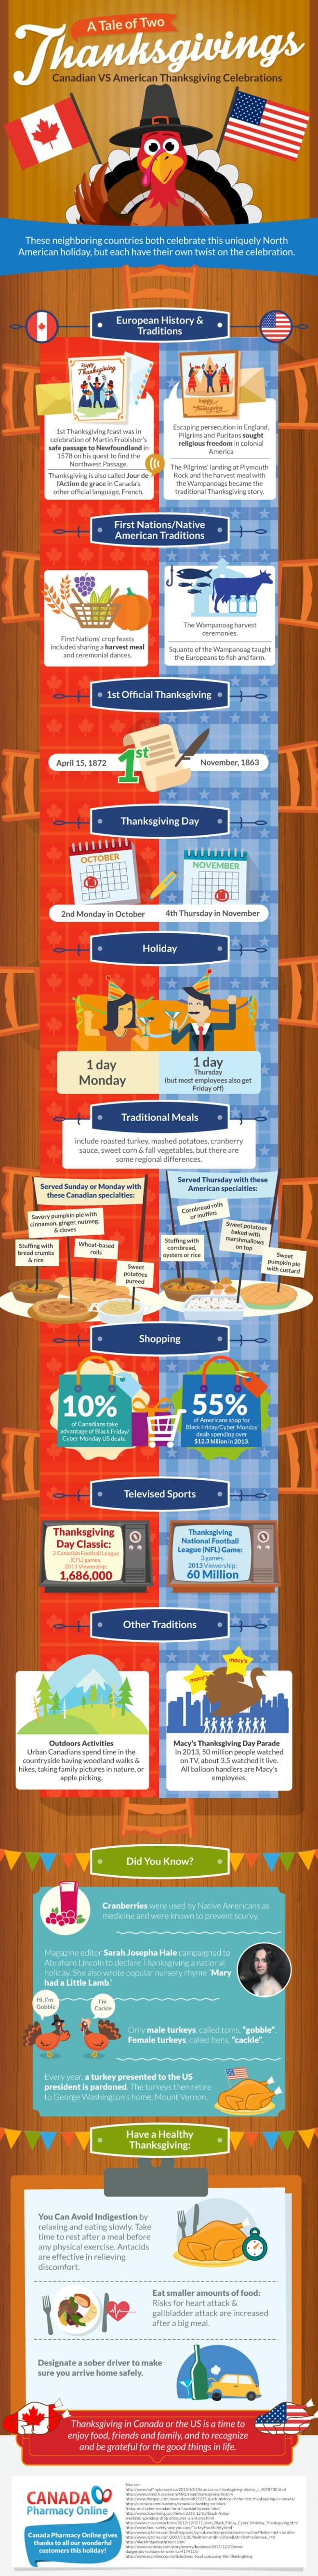 Infographic: A Tale of Two Thanksgivings: Canadian VS American Thanksgiving Celebrations